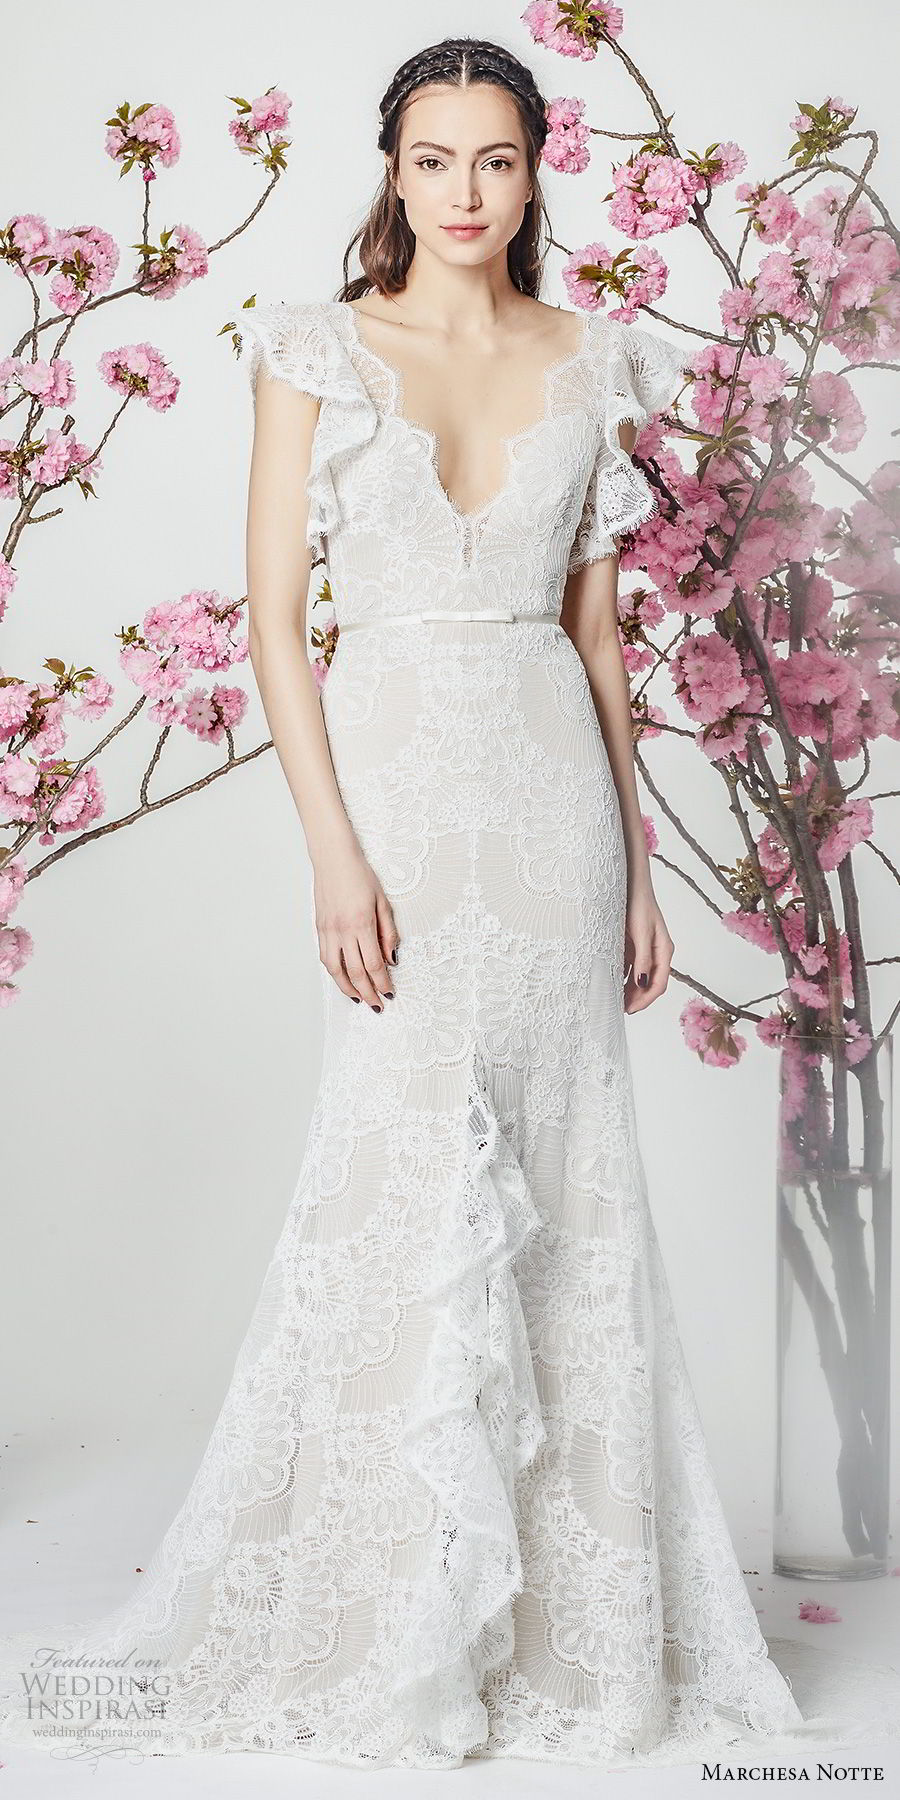 marchesa-notte-spring-2018-bridal-butterfly-sleeves-v-neck-full-embellishment-elegant-romantic-trumpet-wedding-dress-short-train-2-mv.jpg